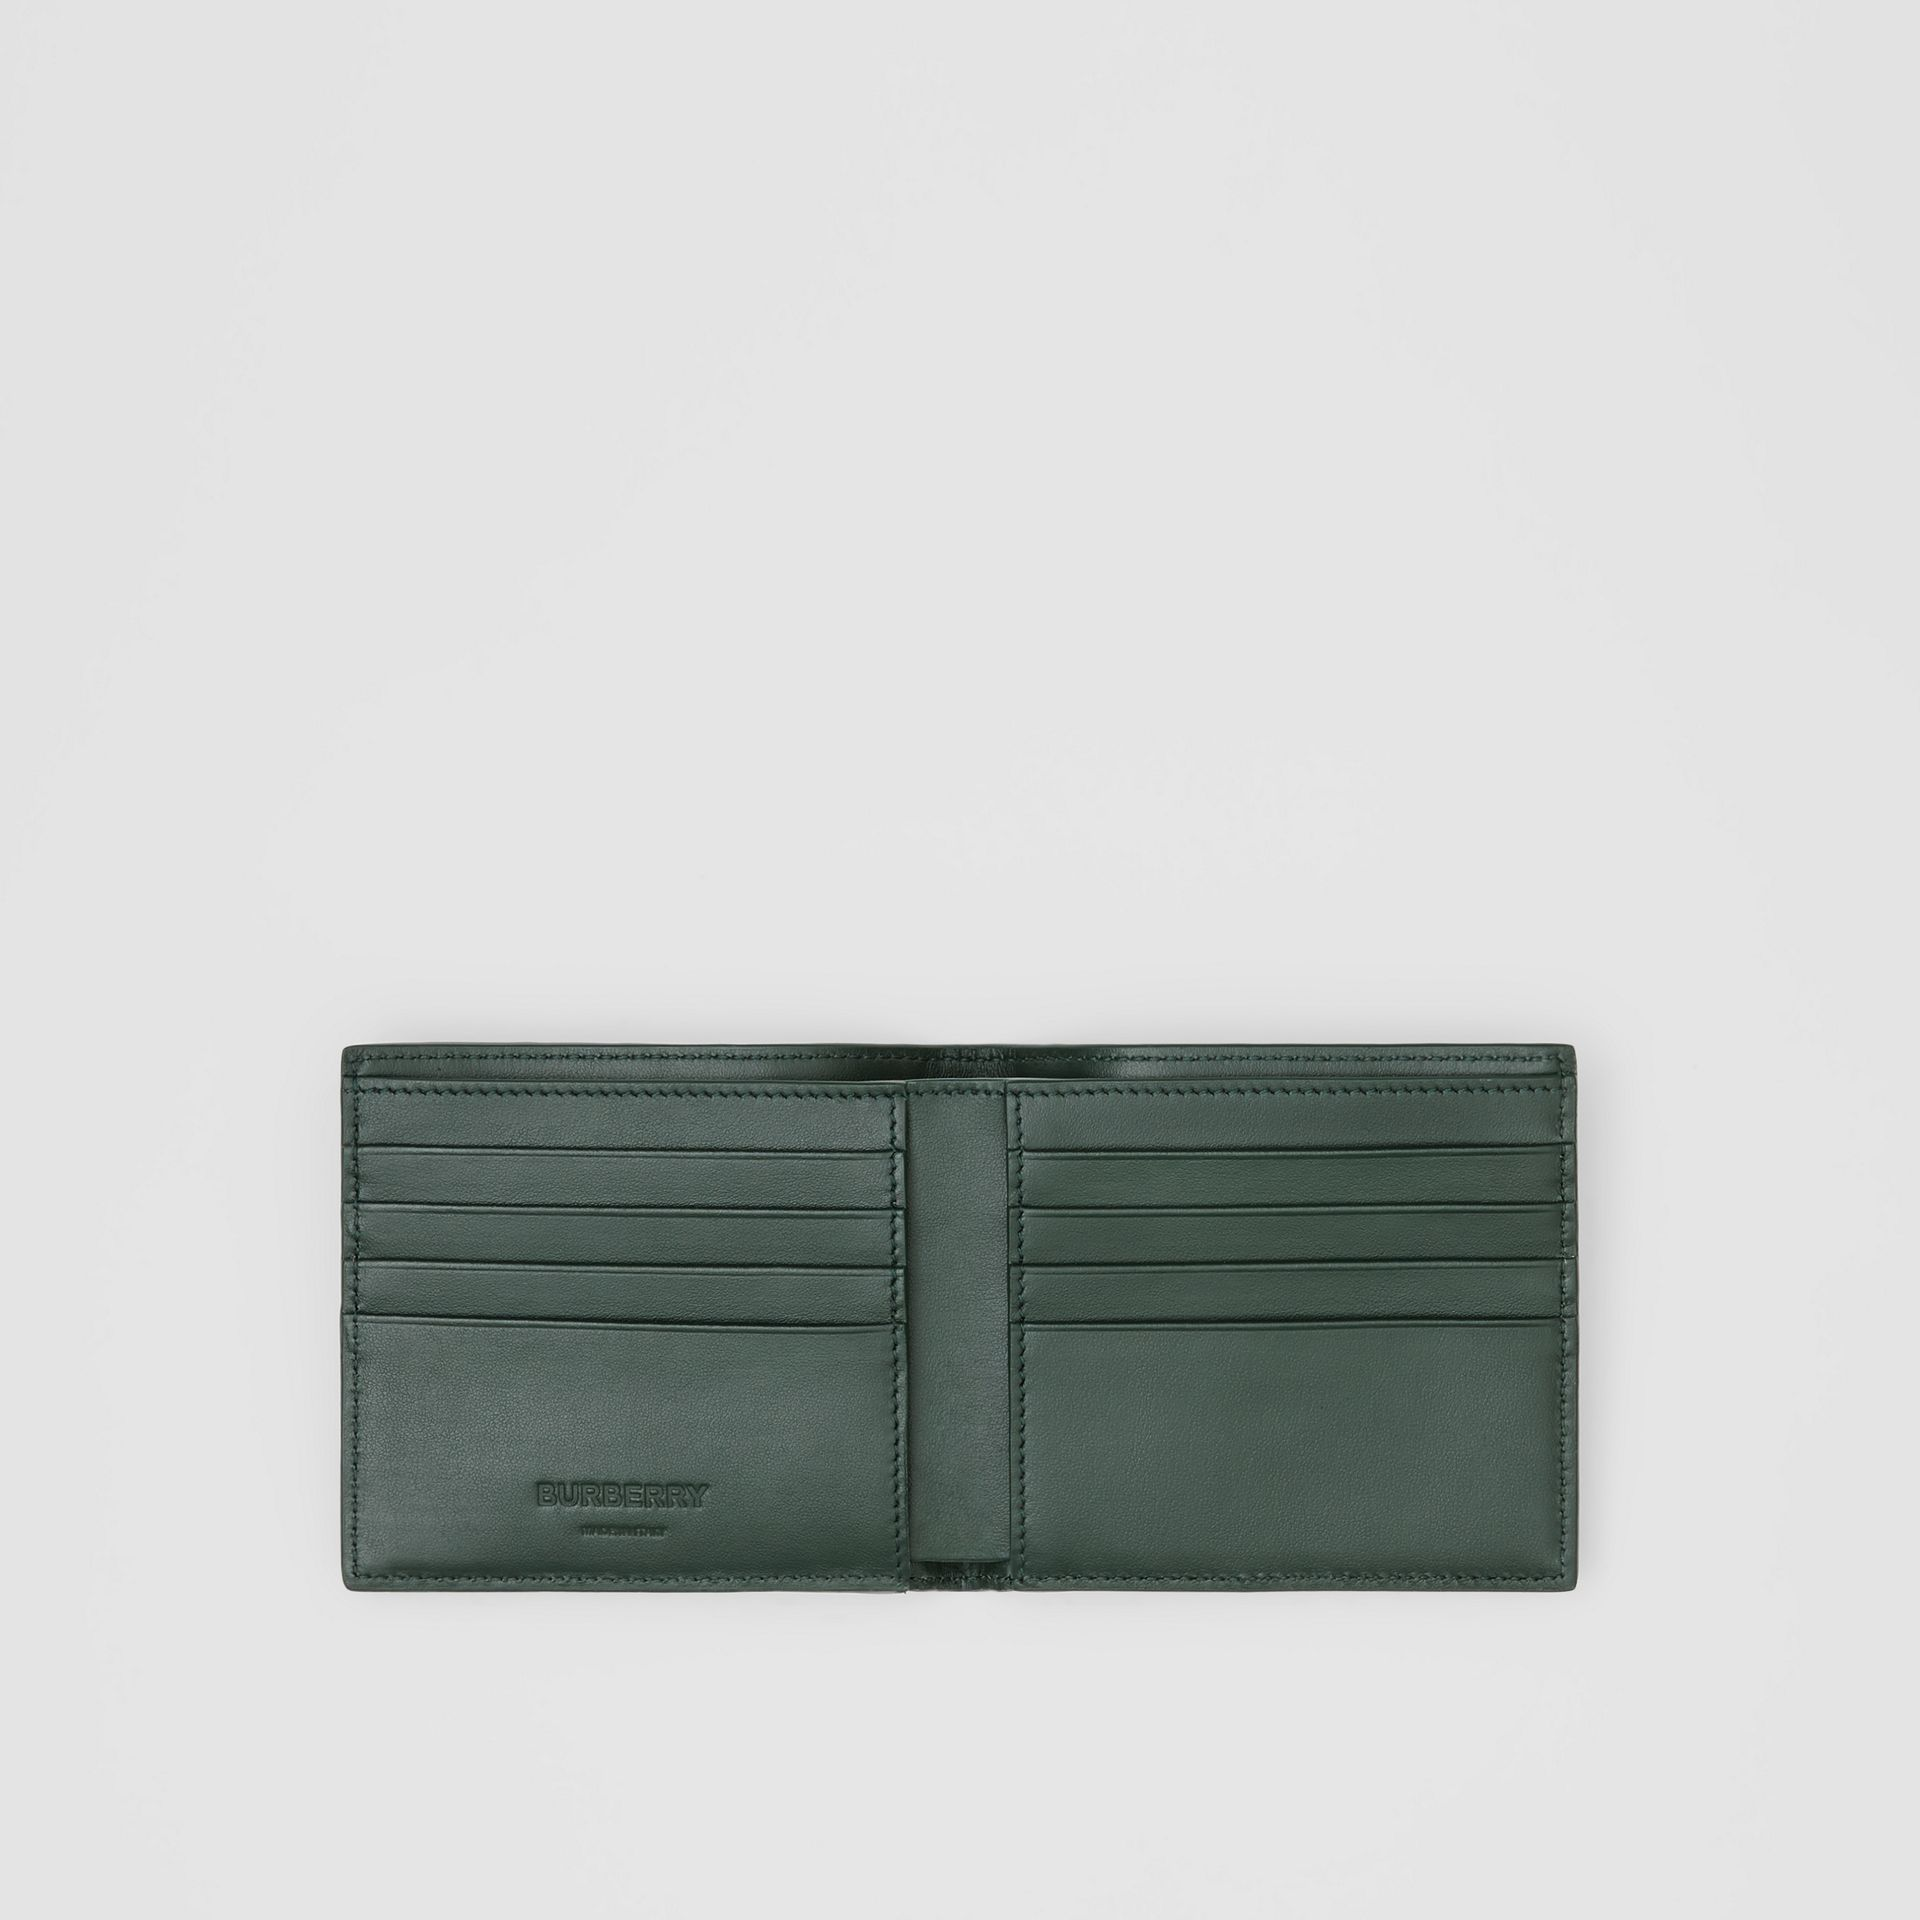 Monogram Leather International Bifold Wallet in Dark Pine Green - Men | Burberry - gallery image 2